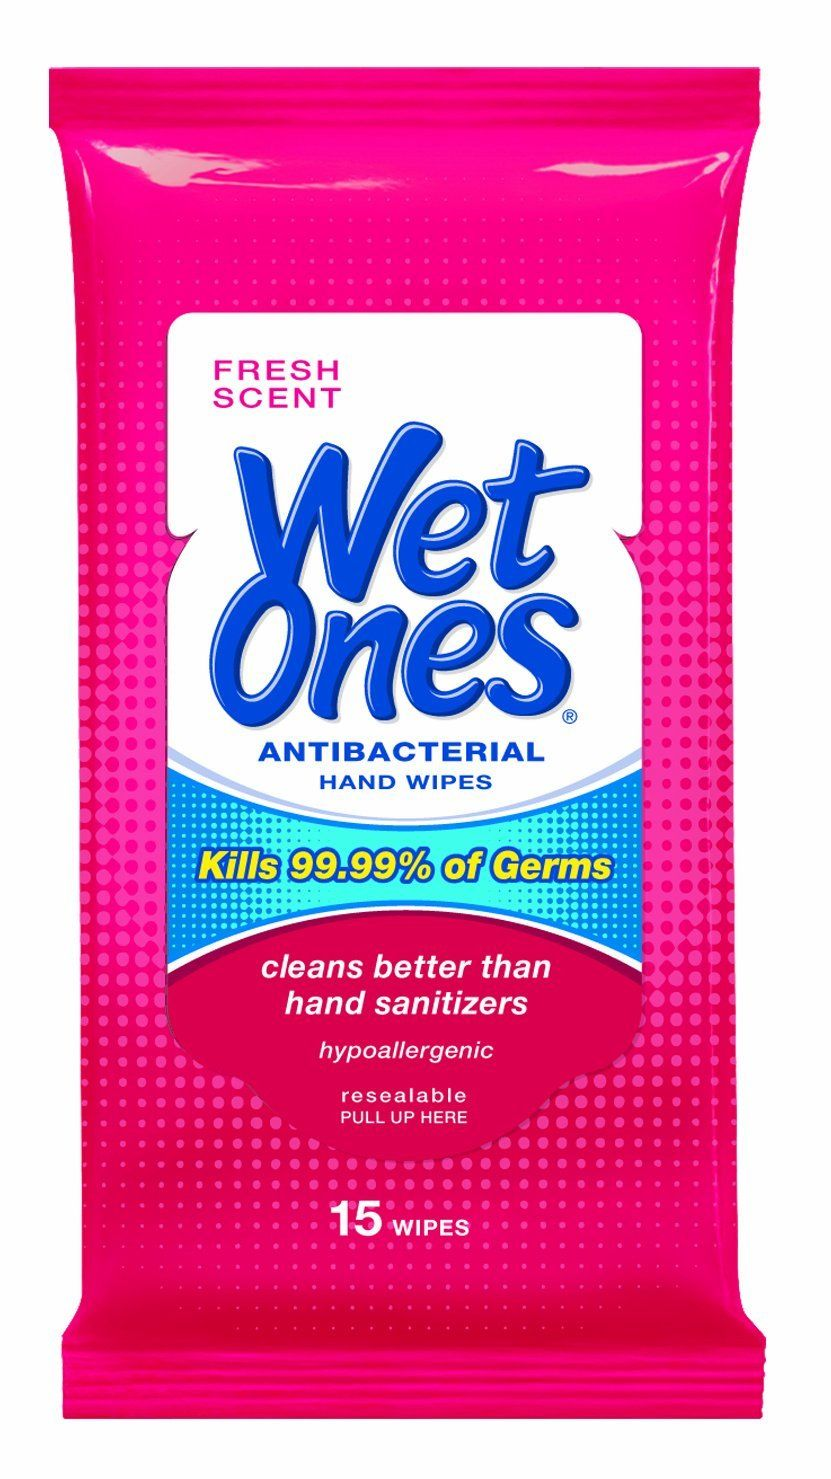 Wet Wipes Are Great While Traveling I Use Them On My Hands And